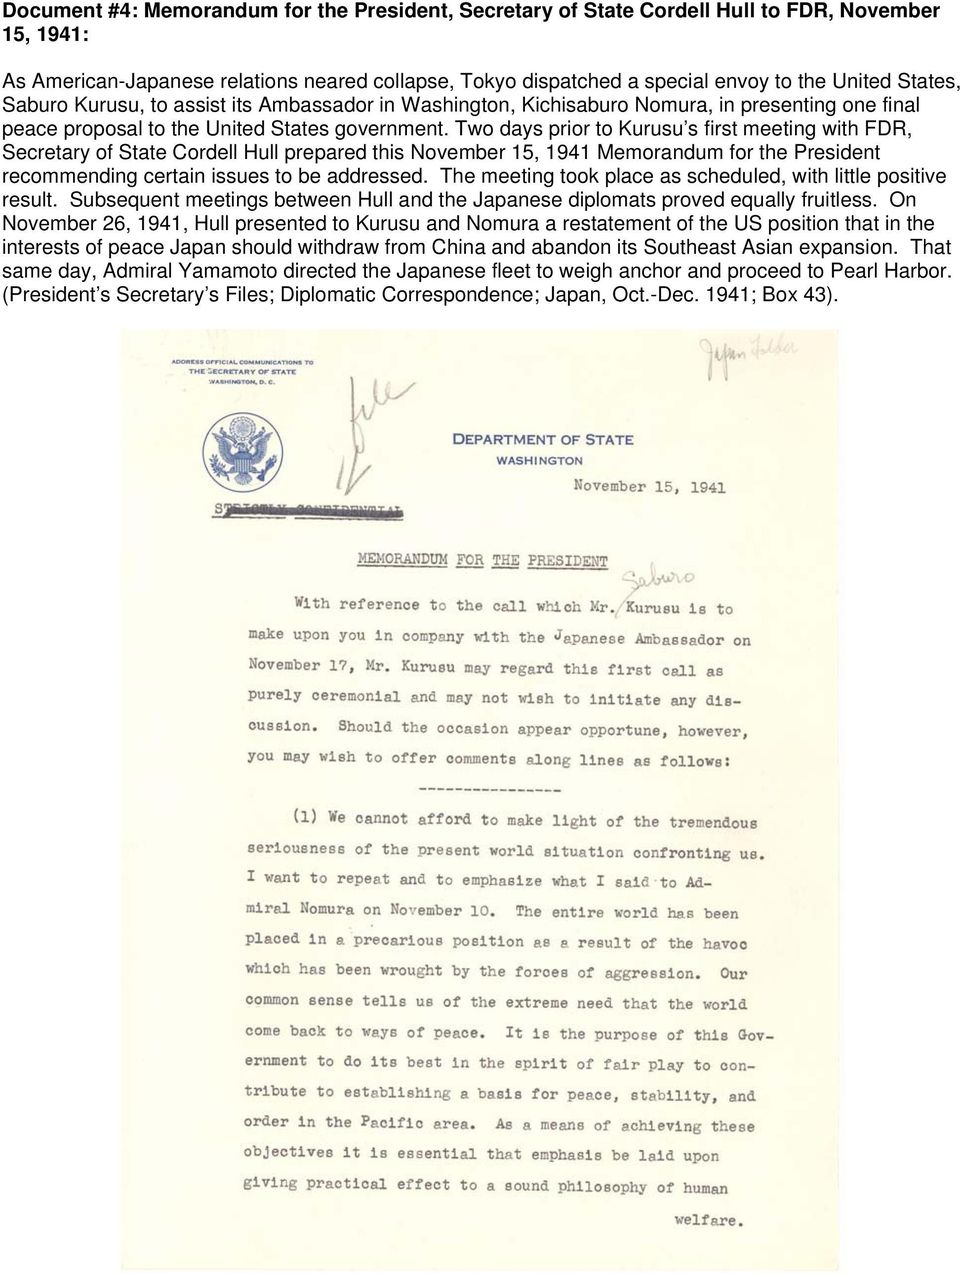 Two days prior to Kurusu s first meeting with FDR, Secretary of State Cordell Hull prepared this November 15, 1941 Memorandum for the President recommending certain issues to be addressed.